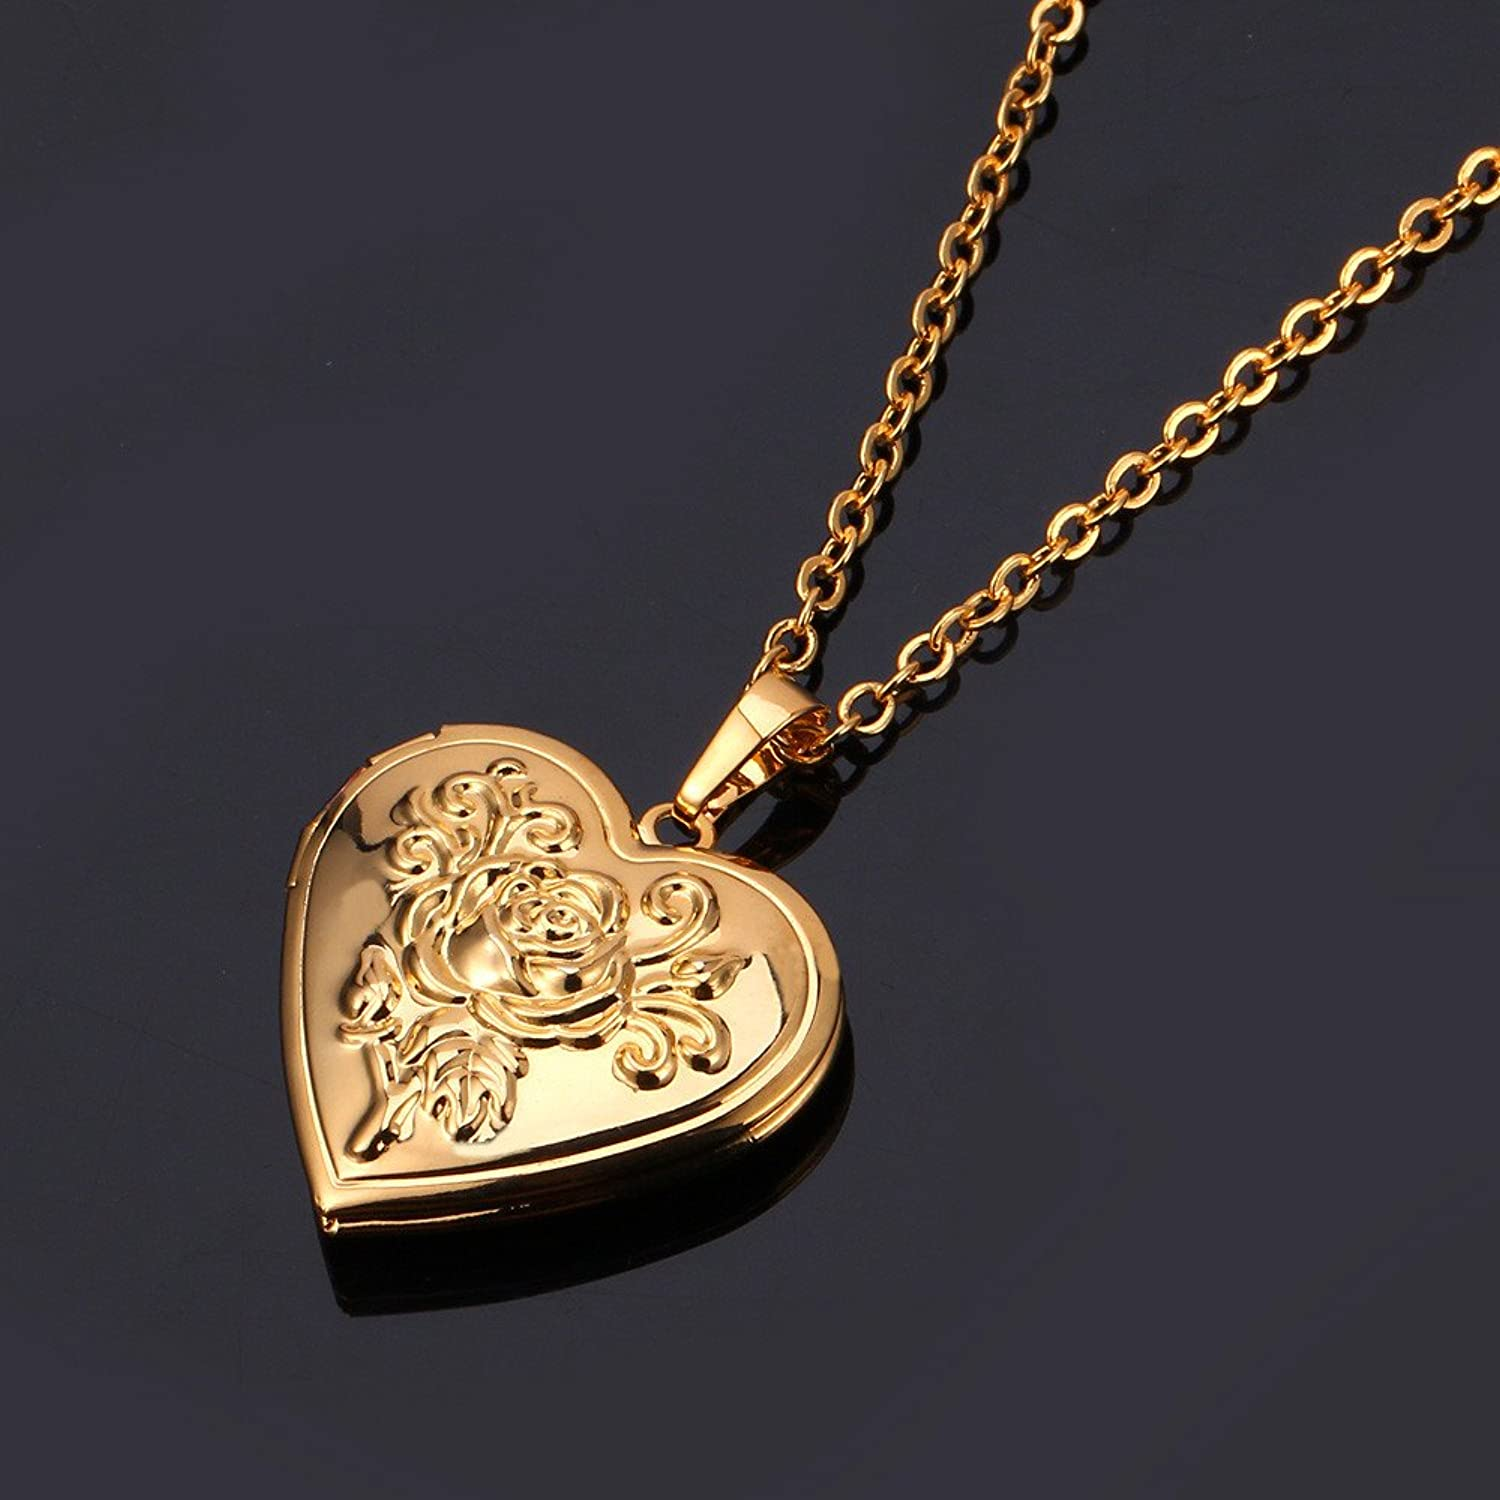 living locket lockets com animal amazon necklace pzzvtlfl plated love memory heart paw dp rose jewelry pendant print dog cute gold